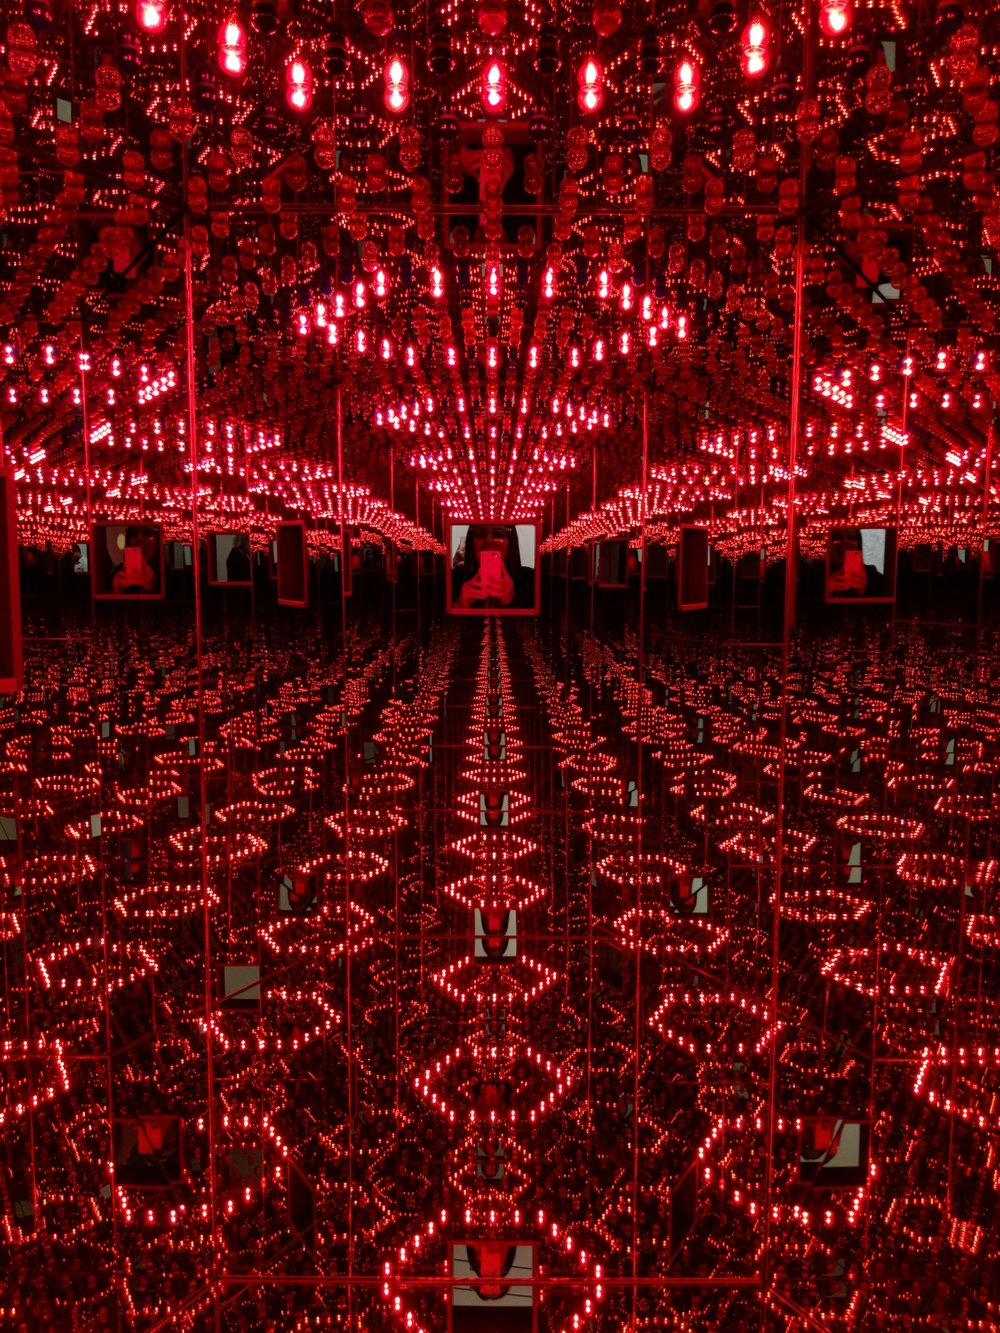 Yayoi Kusama at The Broad, Pixel 2 Phone Review